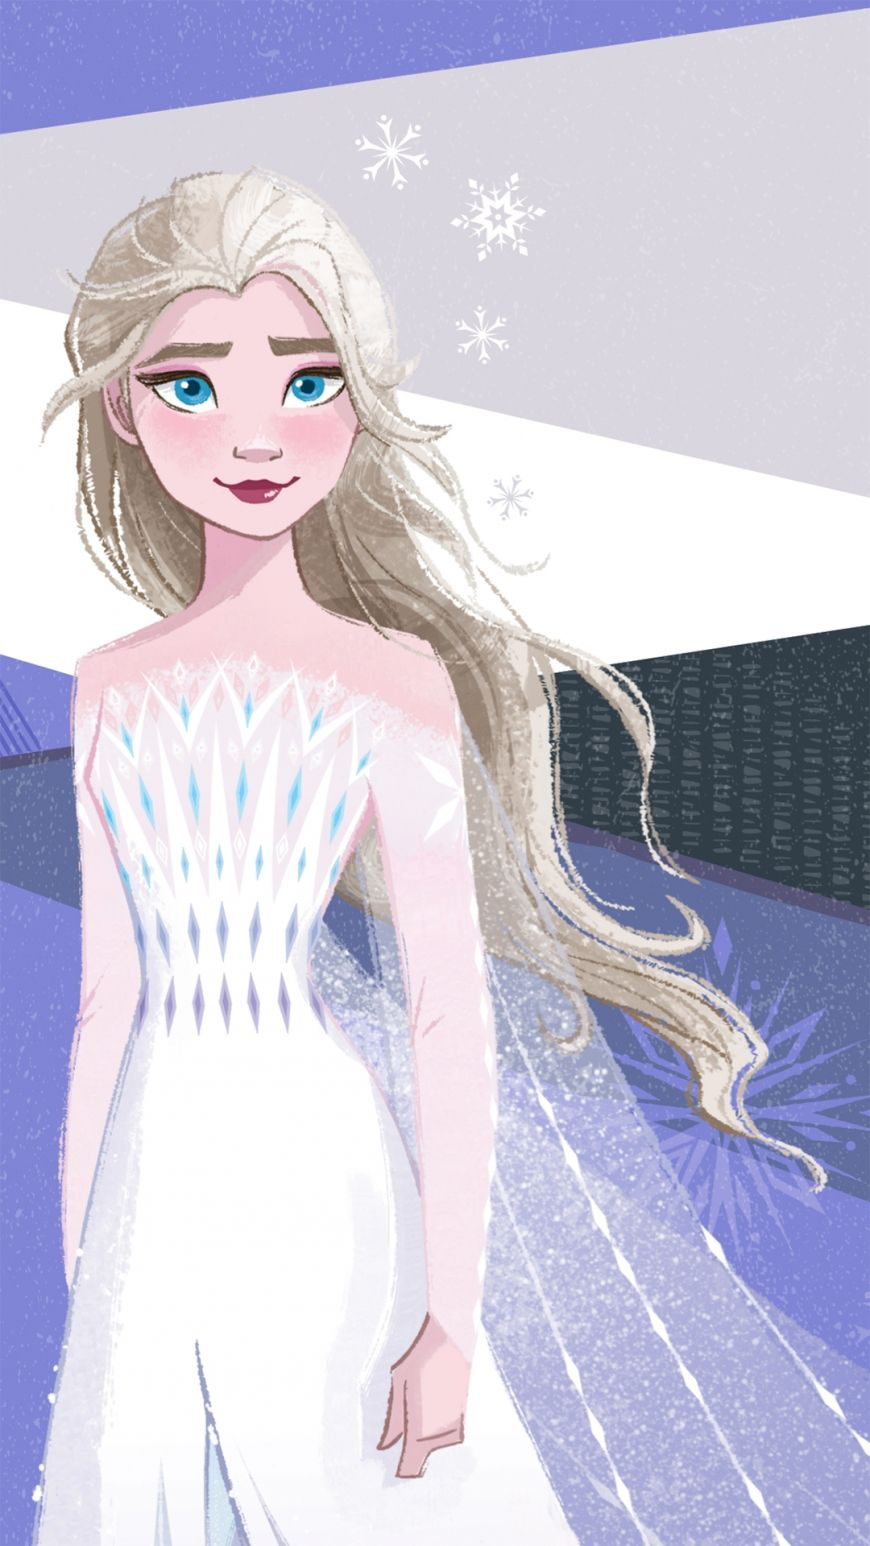 Frozen 2 Hd Mobile Wallpaper Elsa White Dress In 2020 Frozen 2 Wallpaper Disney Elsa Disney Frozen Elsa